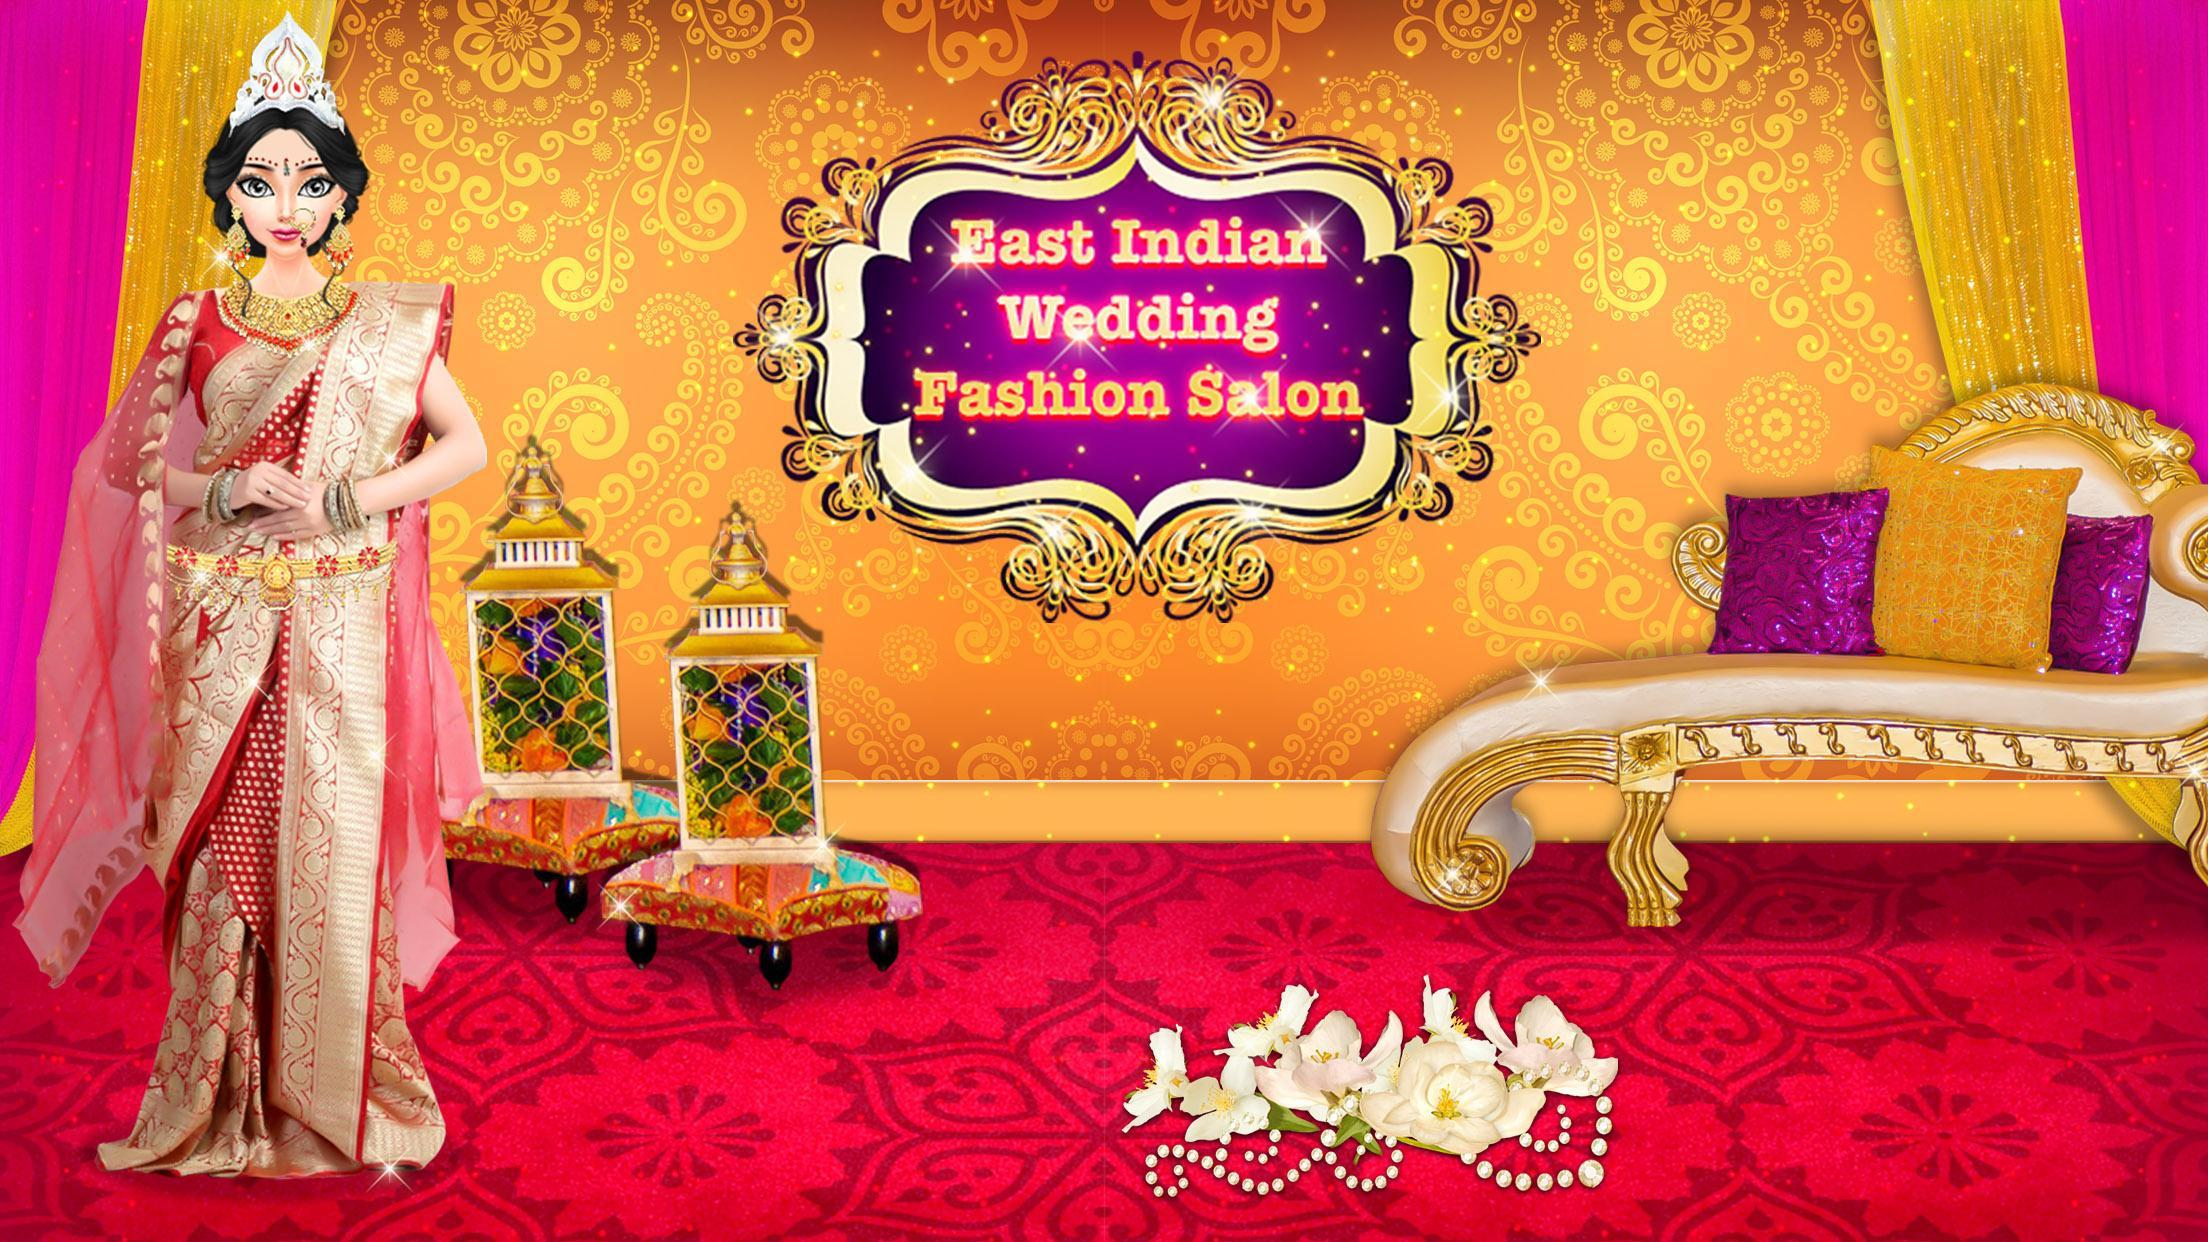 East Indian Wedding Fashion Salon For Bride For Android Apk Download